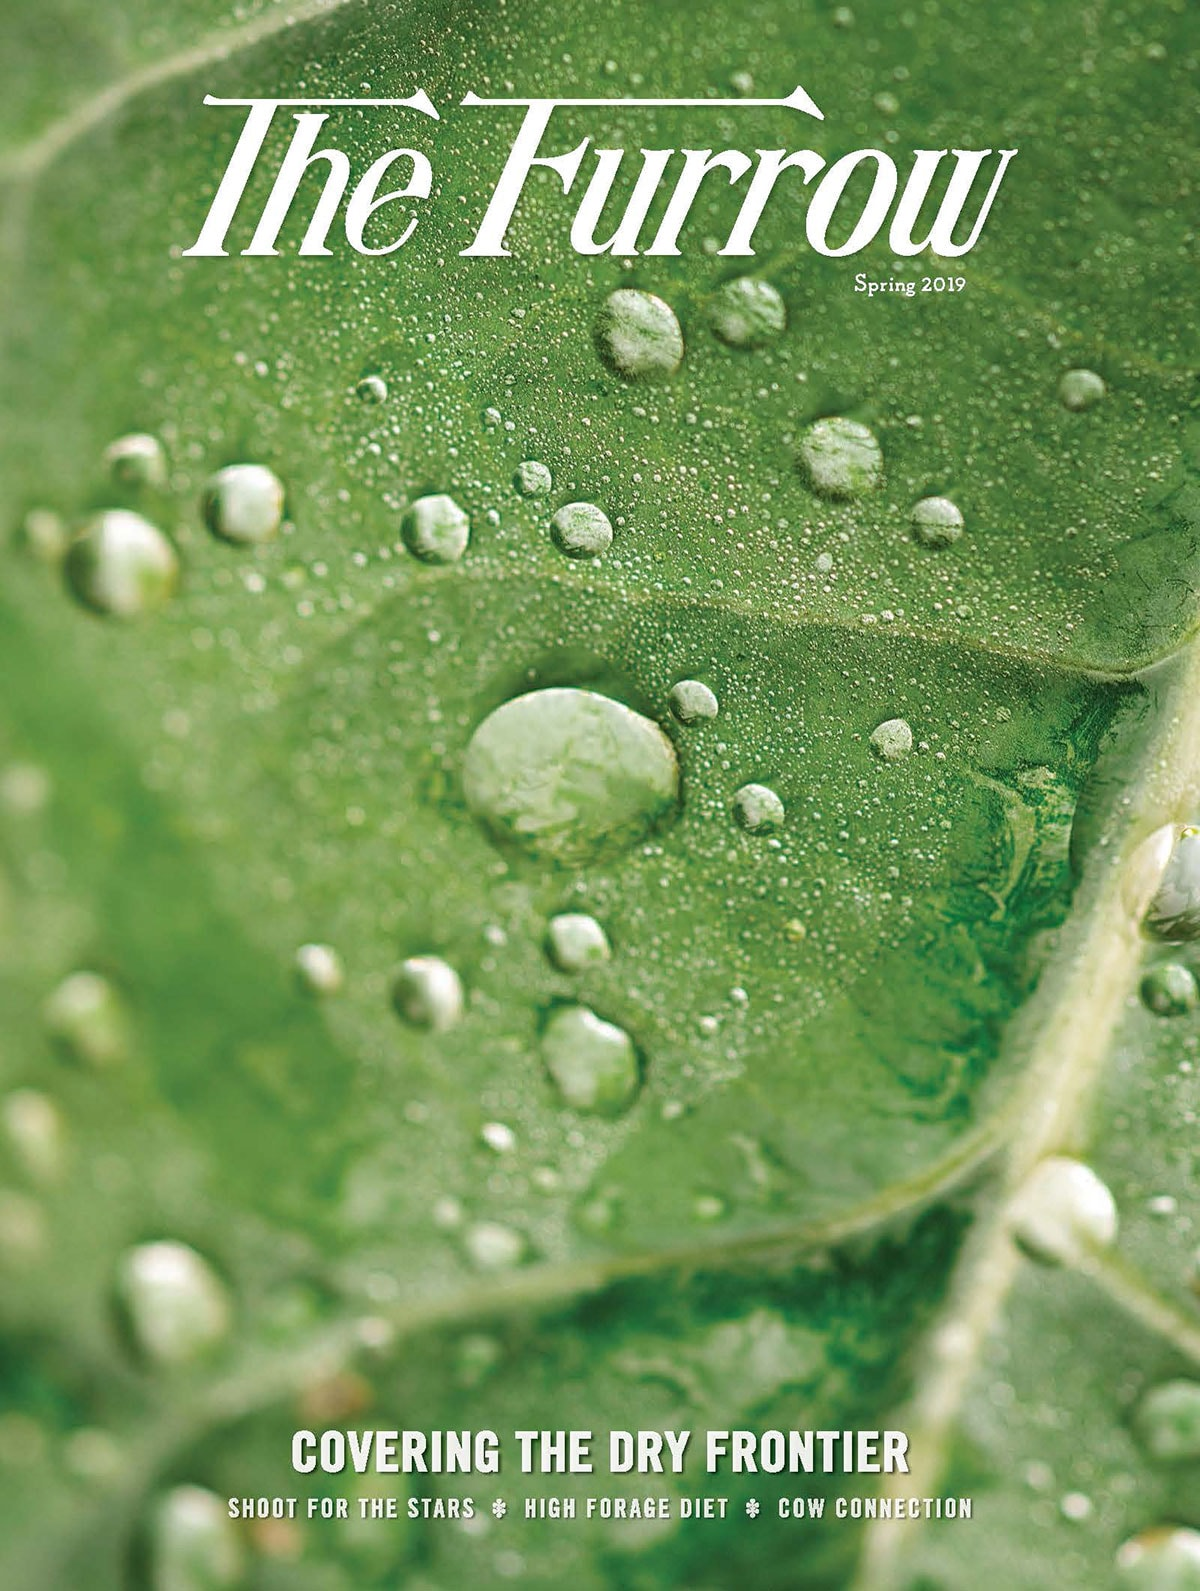 The Furrow - Spring 2019 Issue